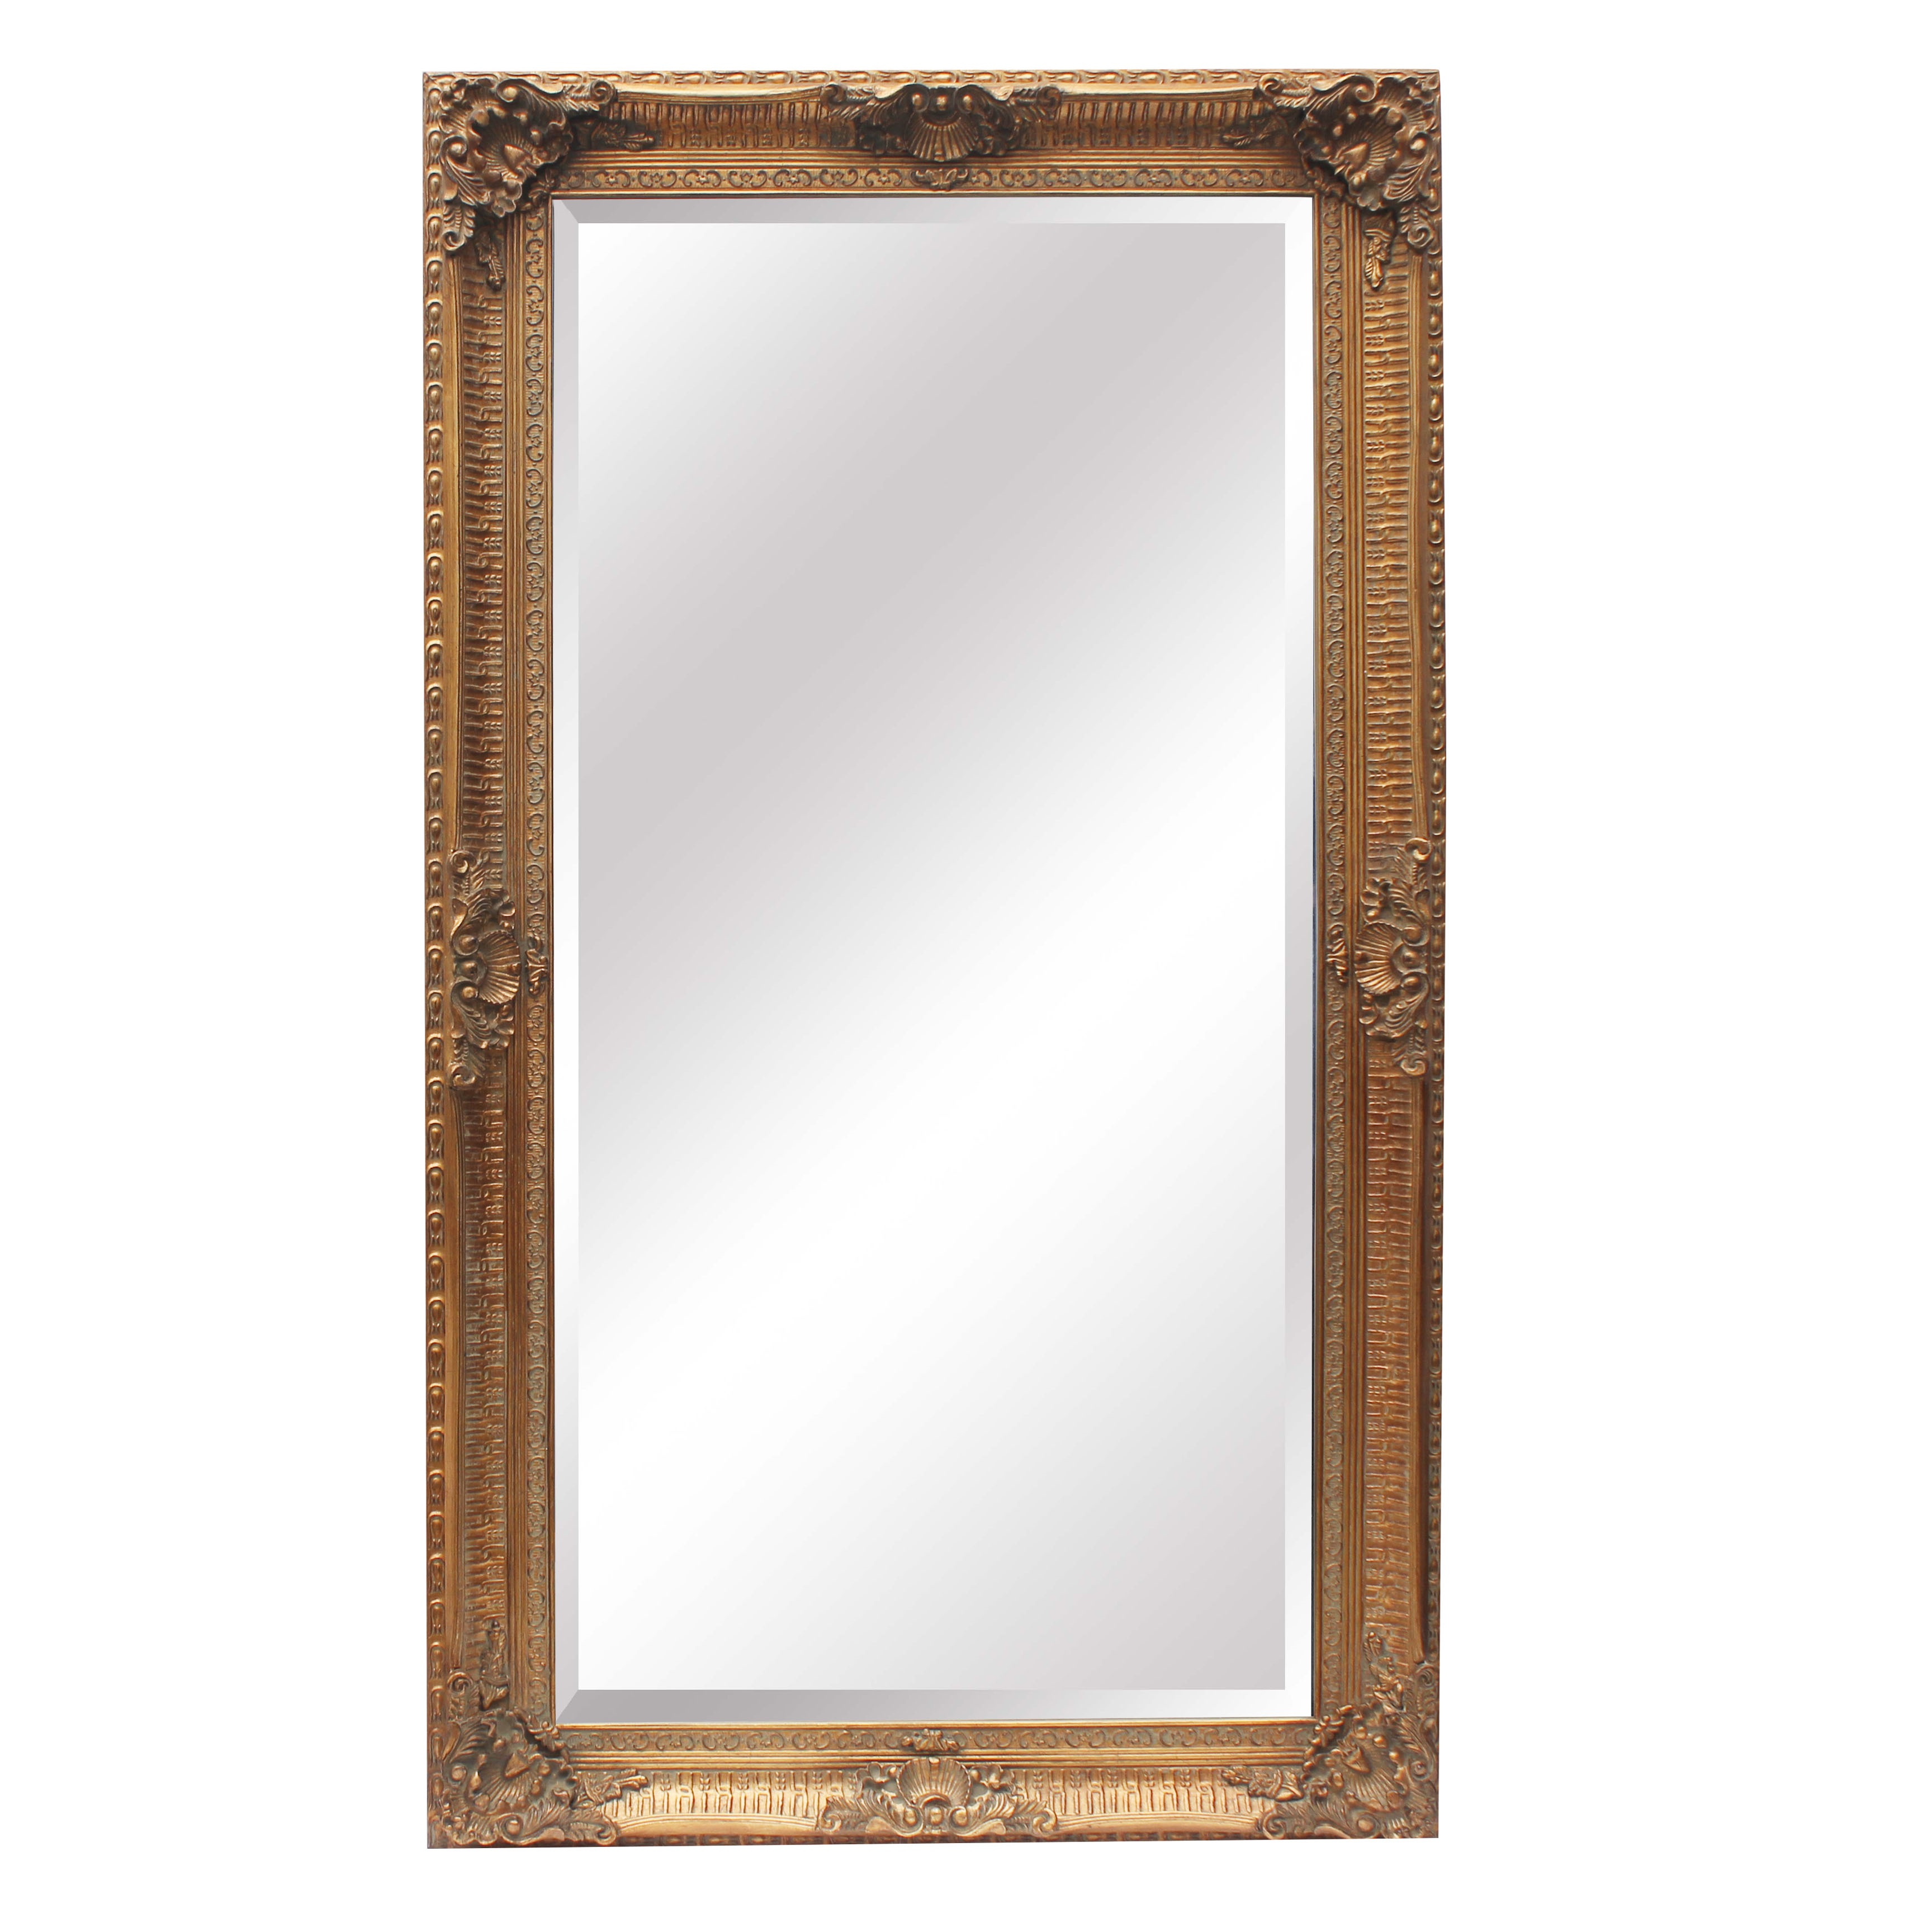 Extra Large Ornate Gold Mirror